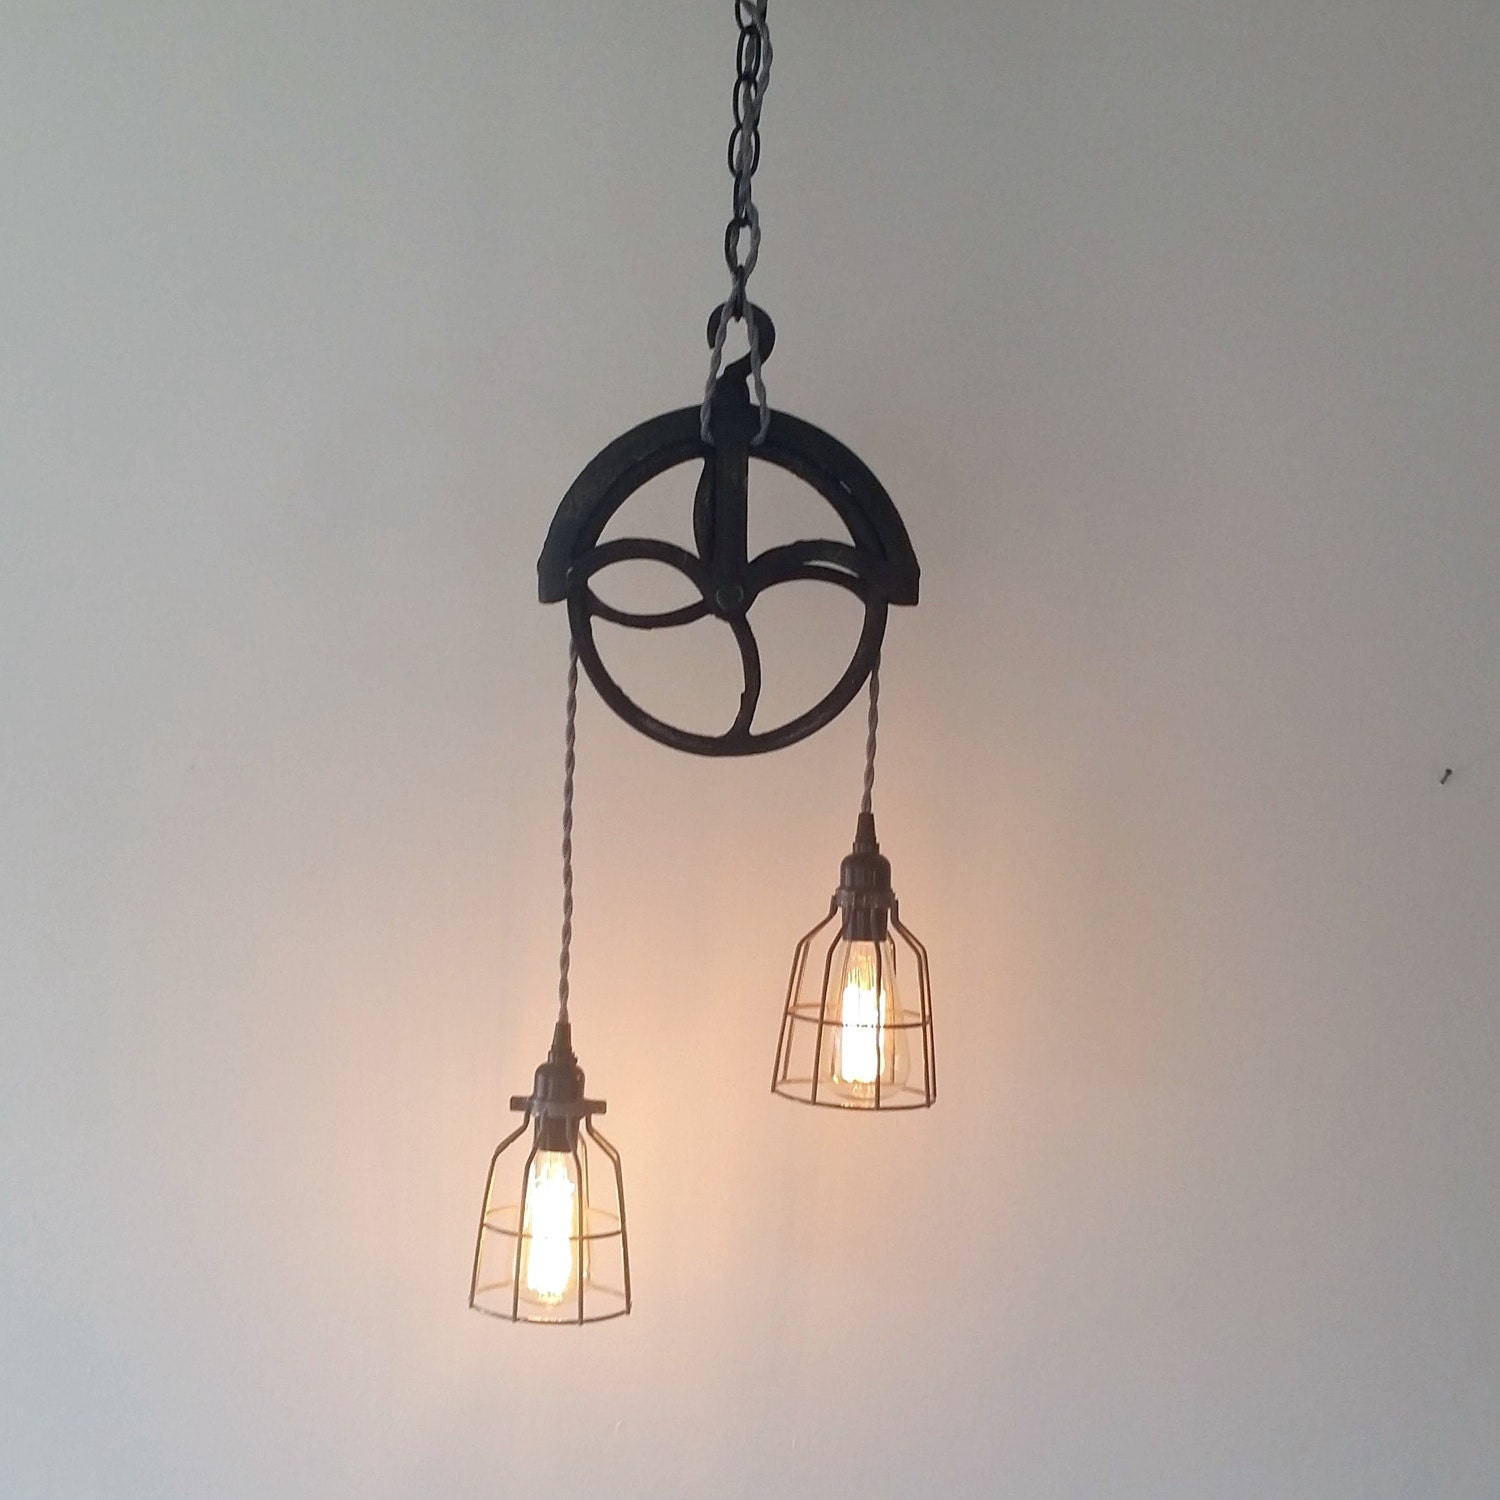 Industrial Pulley Pendant Light Unique Modern By Urbananalog